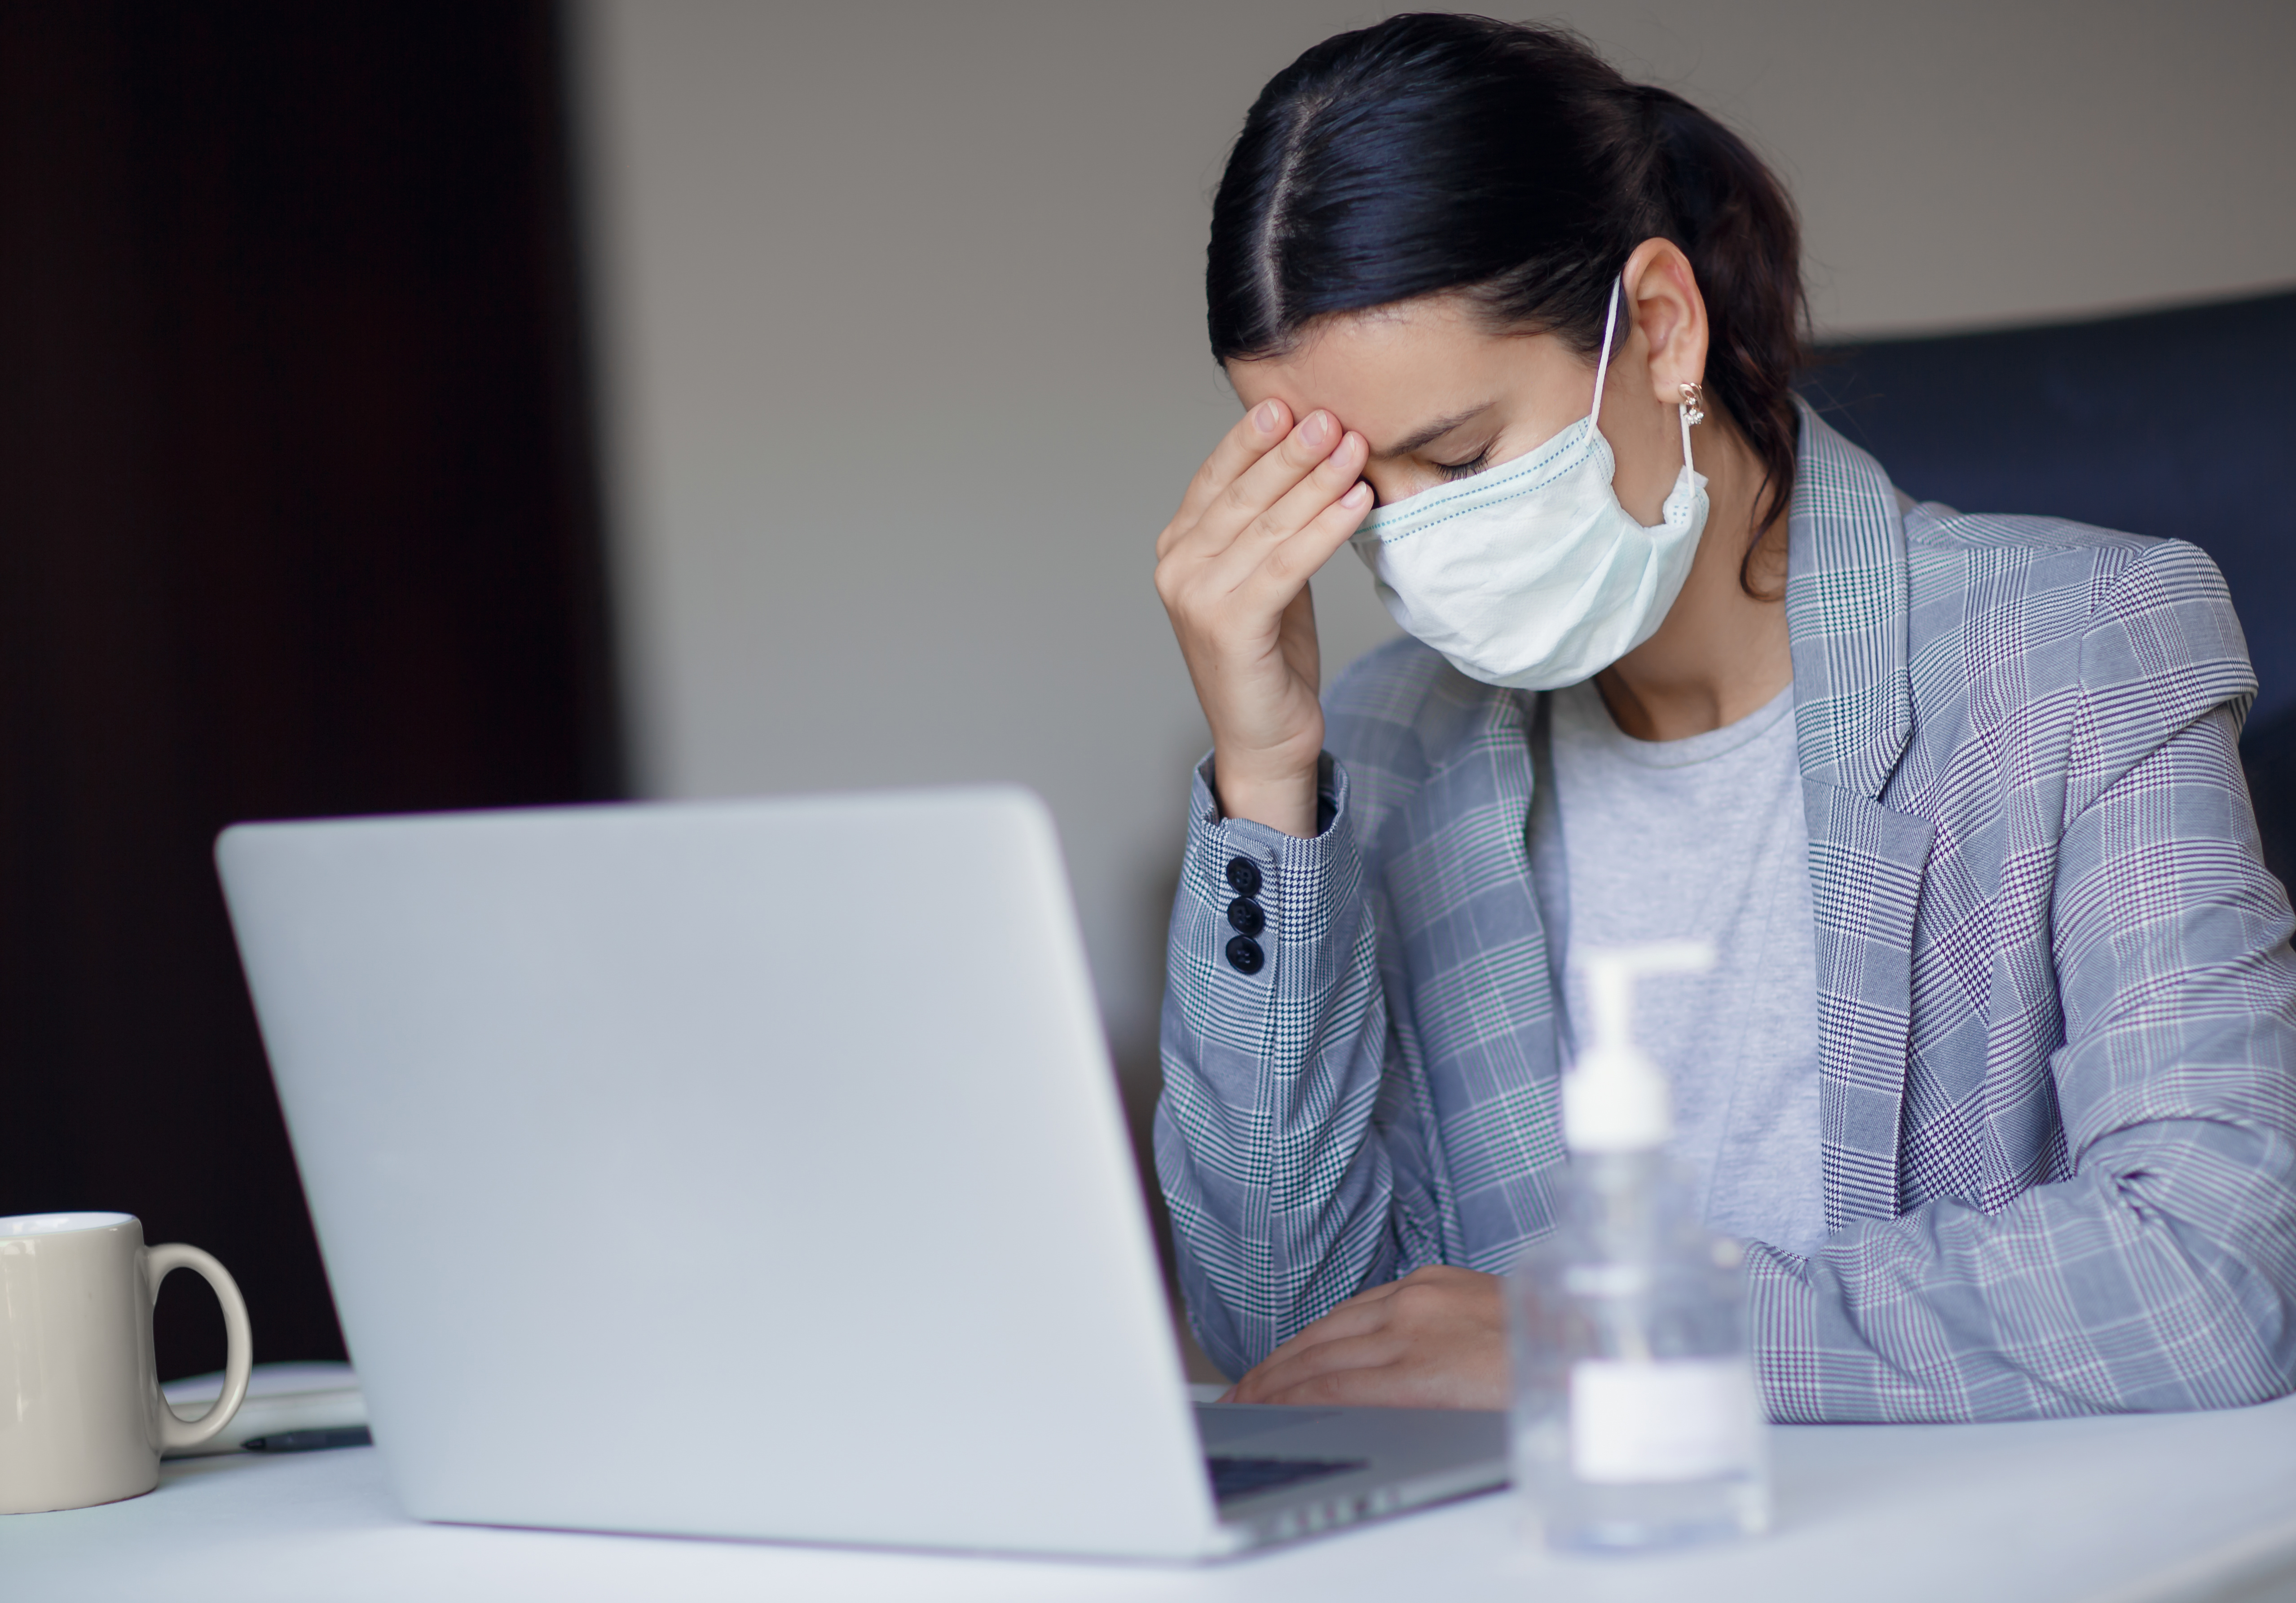 Sick Building Syndrome Prevention: Tips for Building Managers